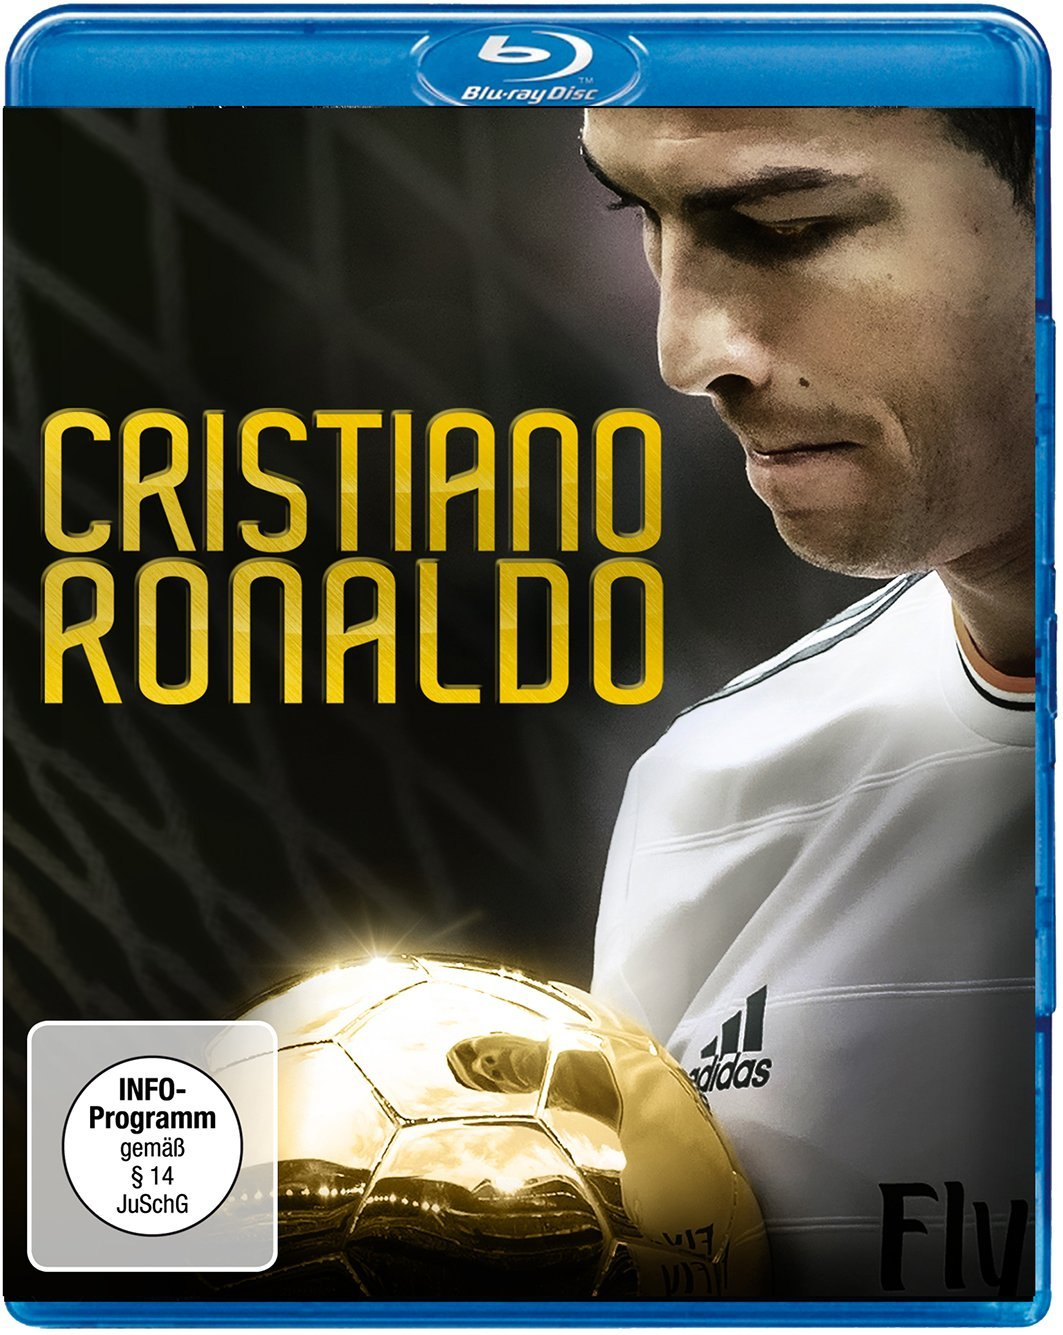 Cristiano.Ronaldo.German.DL.DOKU.1080p.BluRay.x264-TV4A